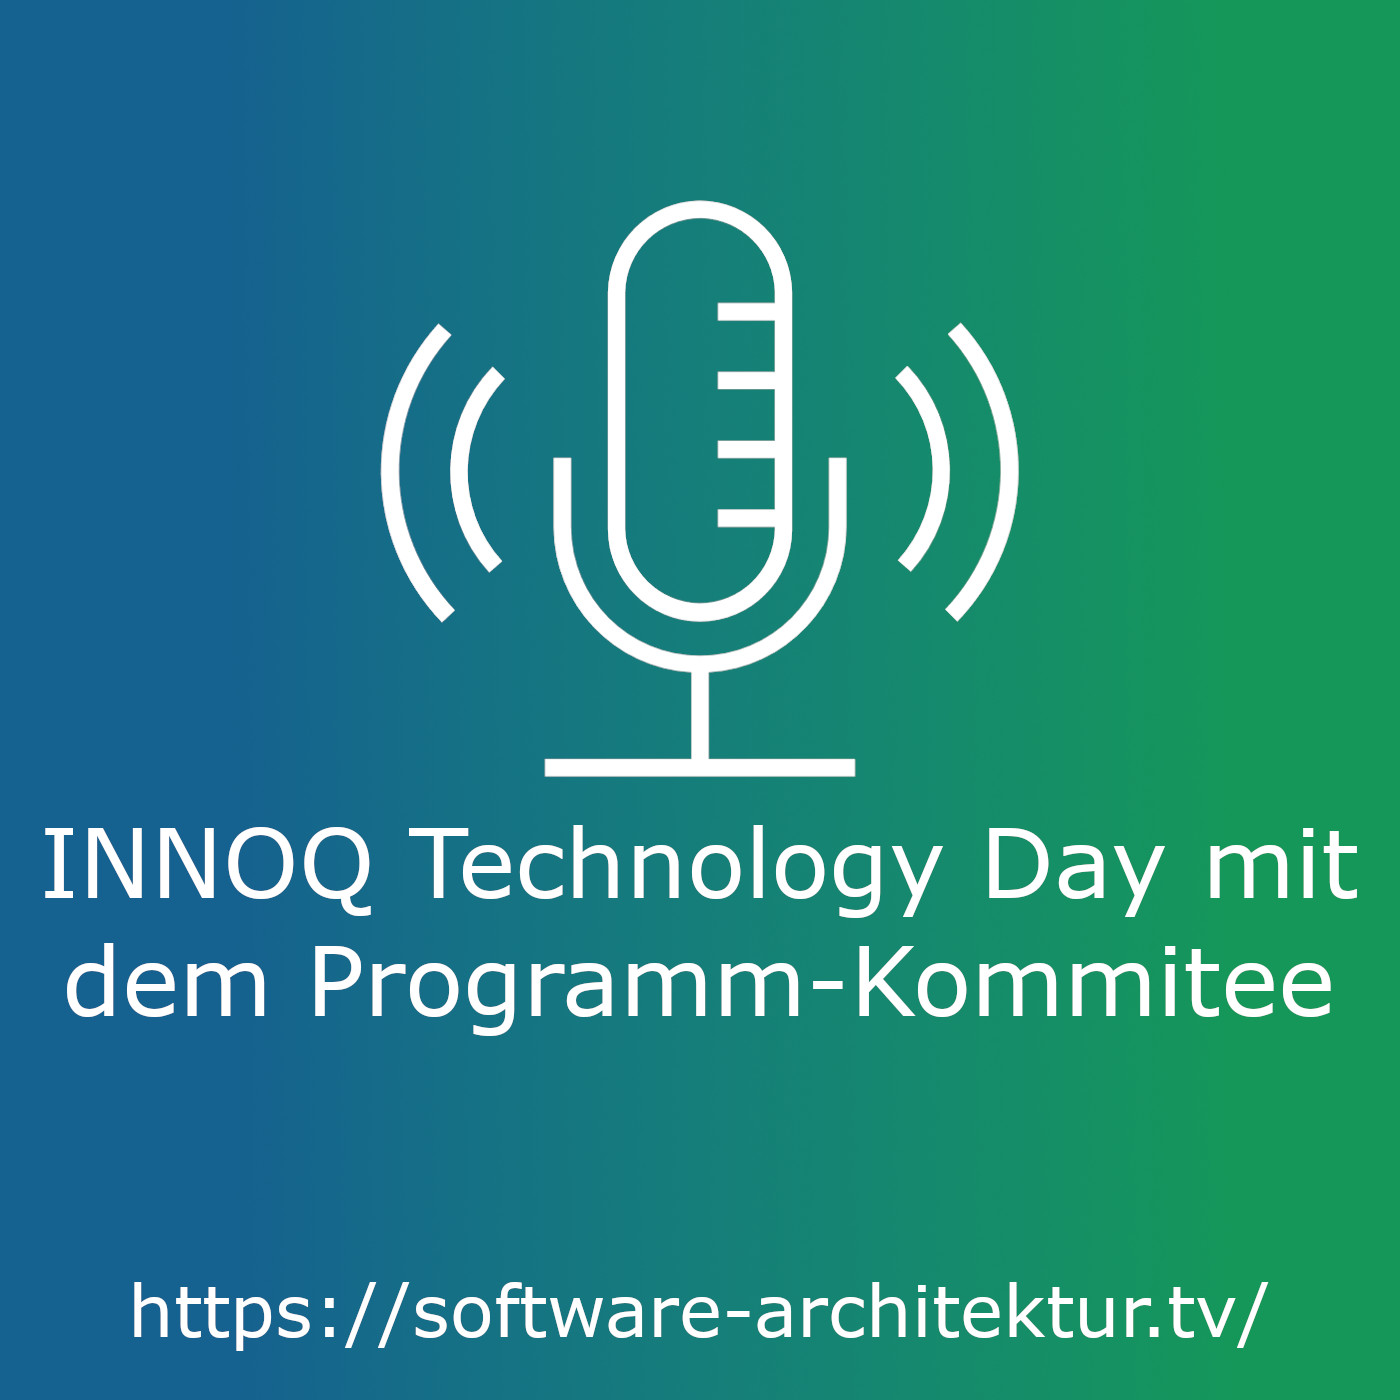 Der INNOQ Technology Day mit dem Technology-Day-Programm-Komitee